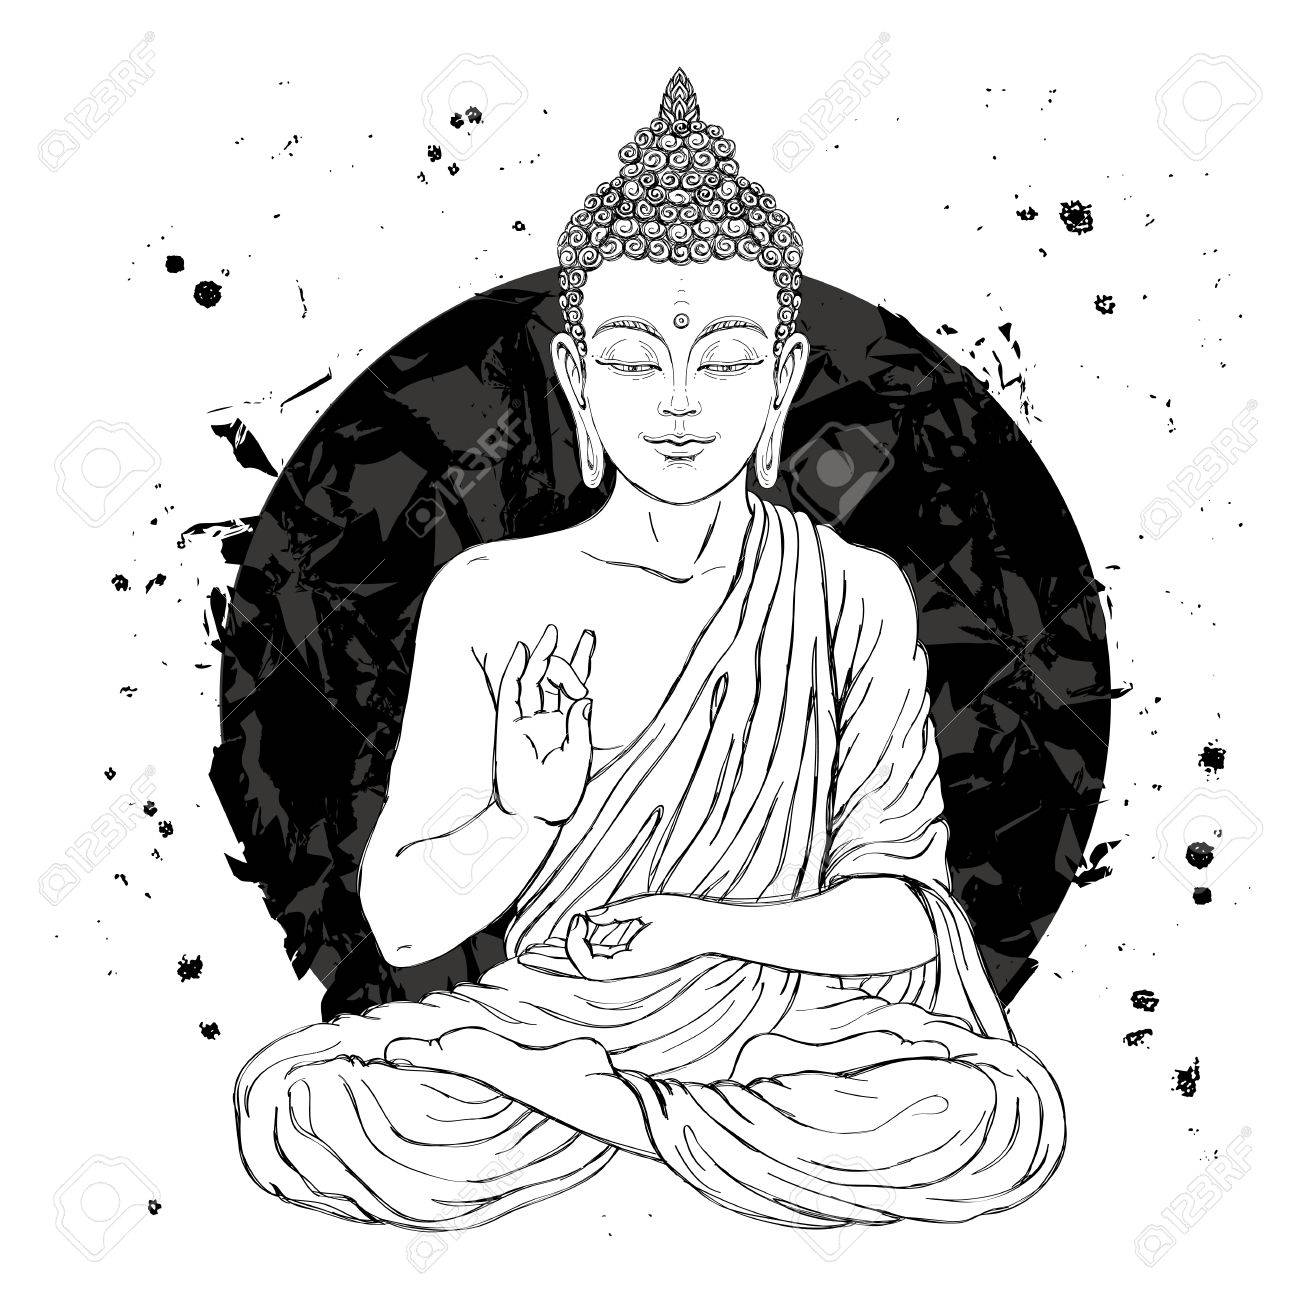 Seated buddha in the lotus position vector illustration on white background with a smear of